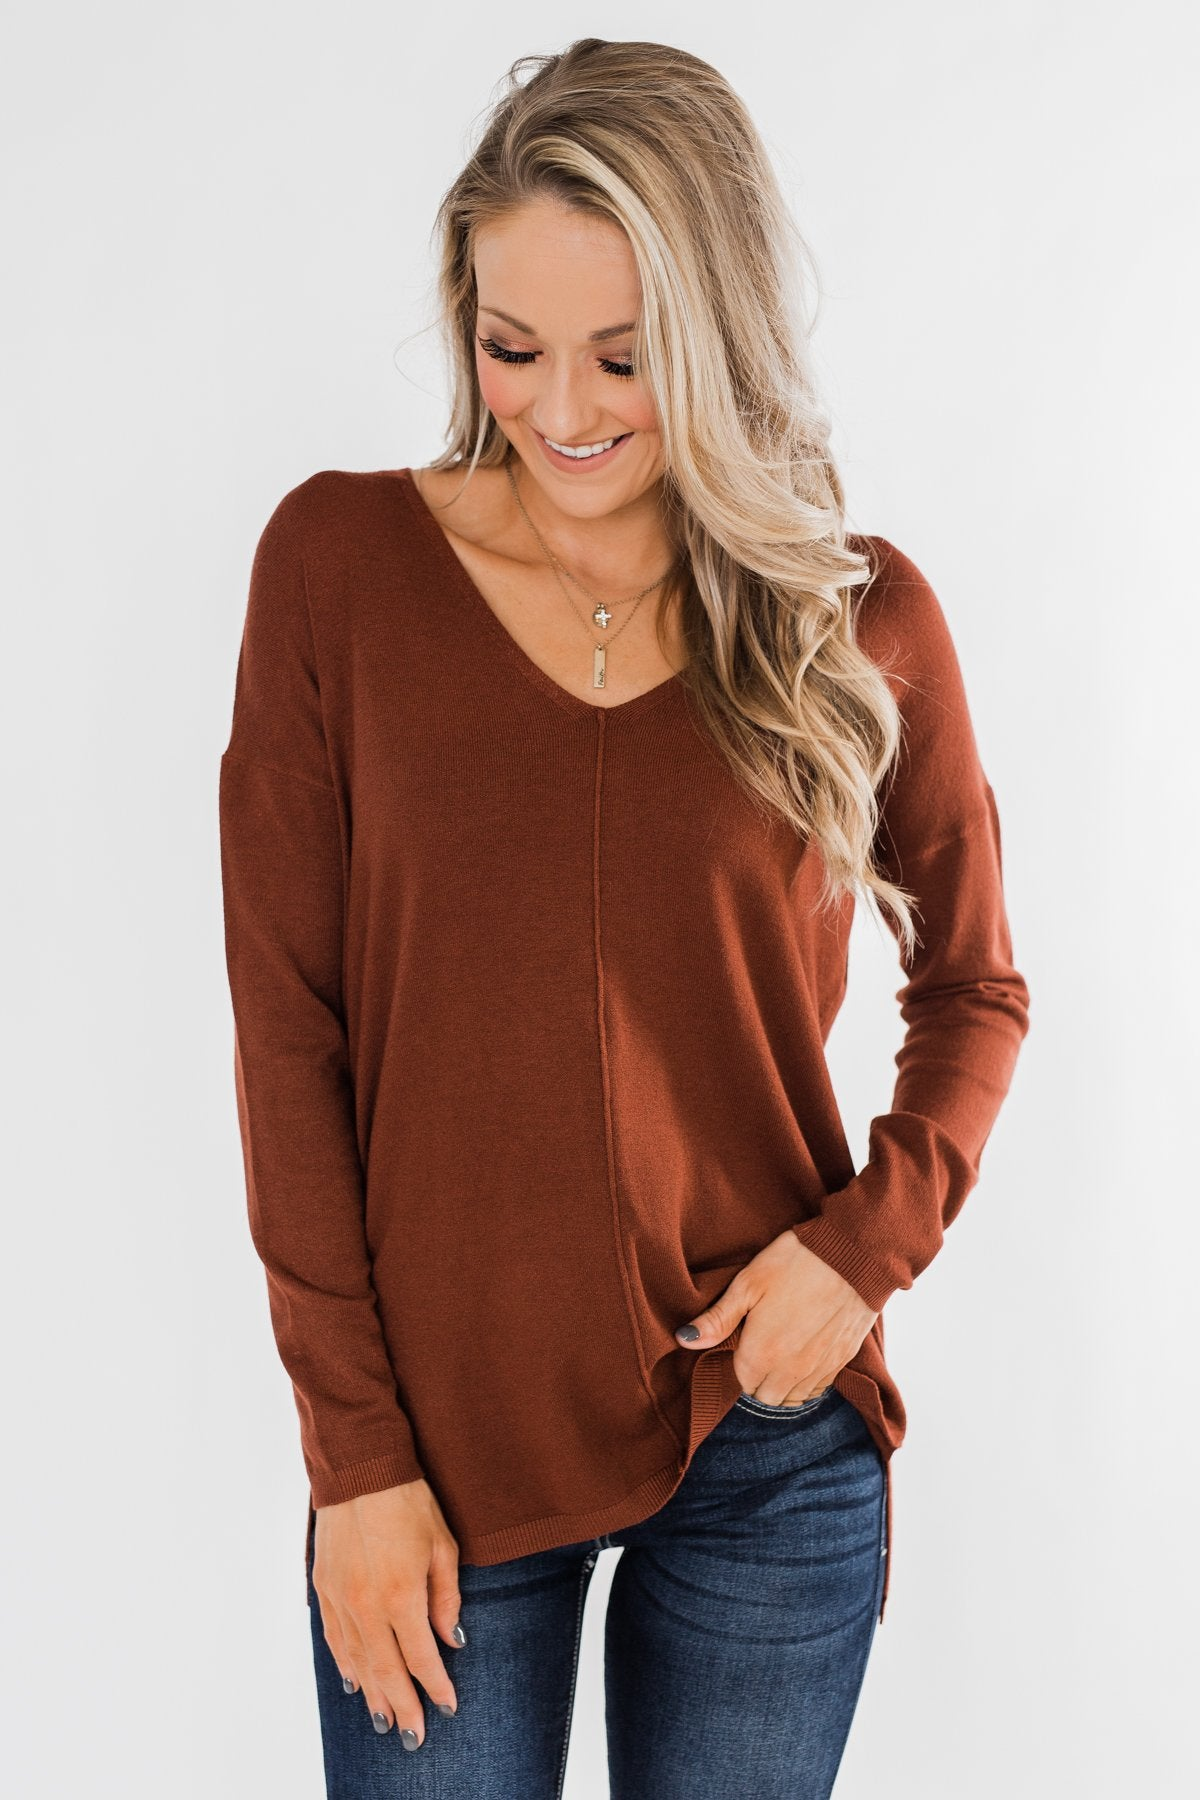 Truly Yours Sweater- Dark Rust